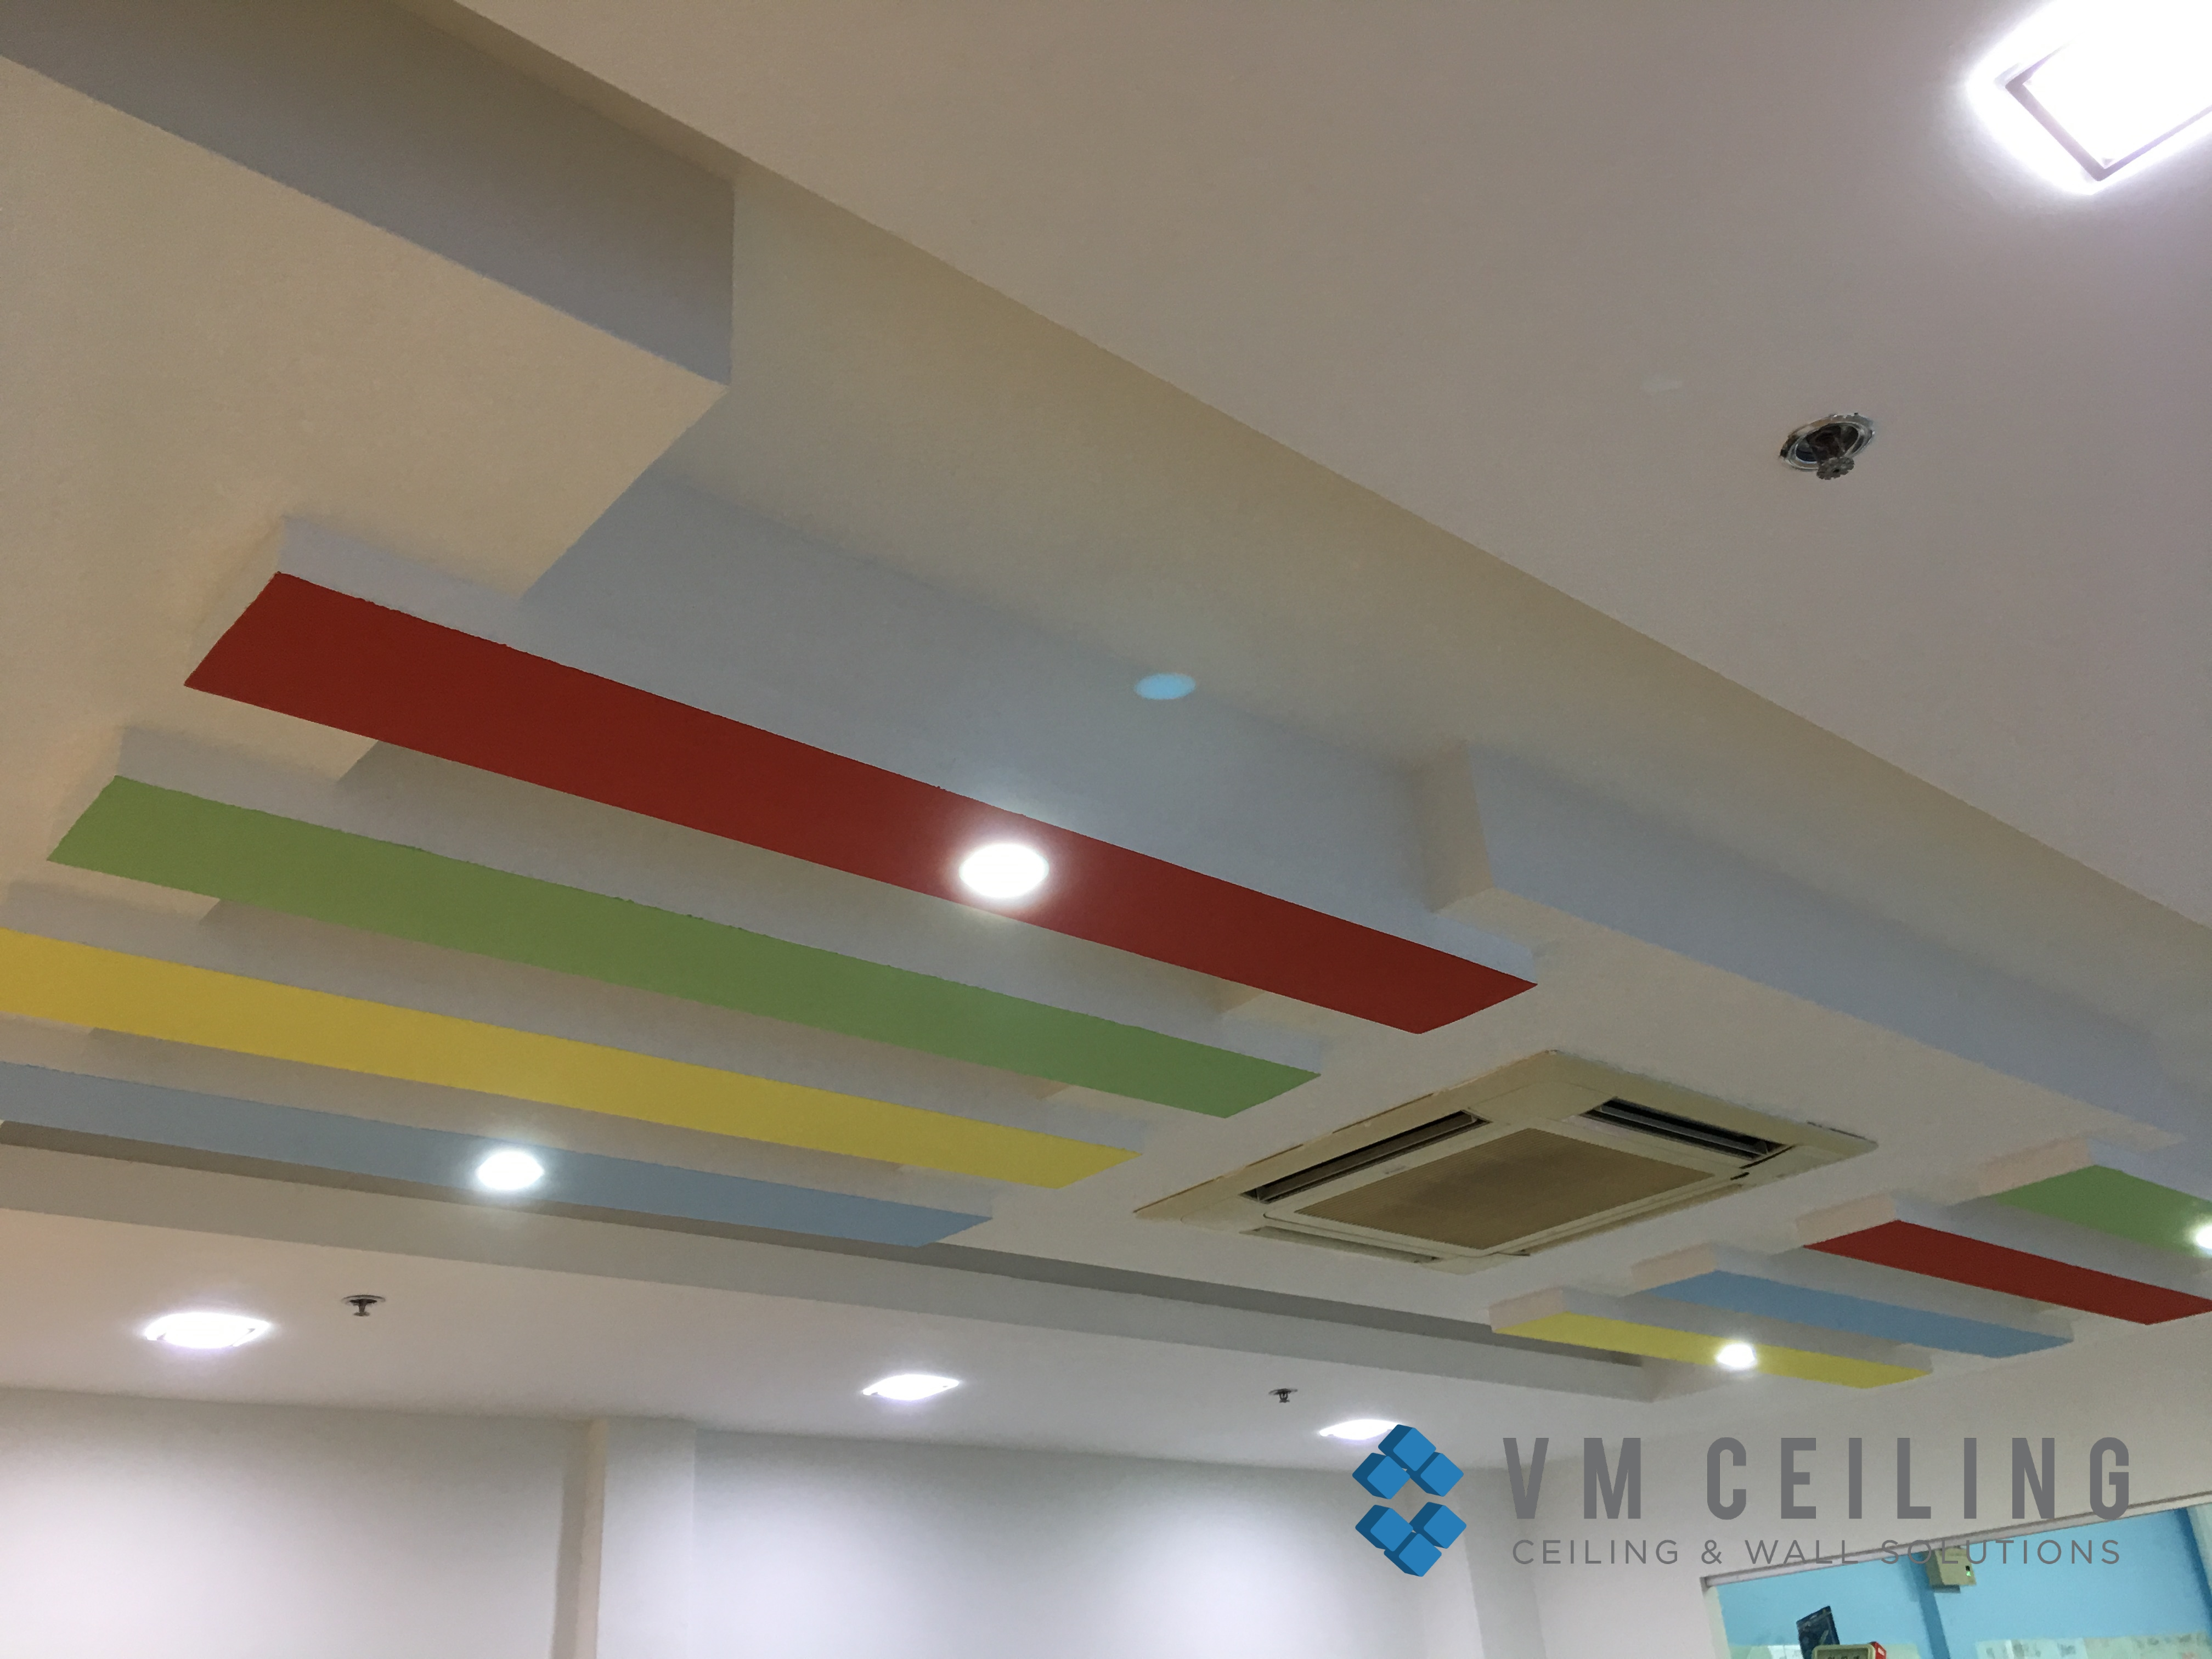 office false ceiling renovation vm ceiling singapore commercial bukit merah 12